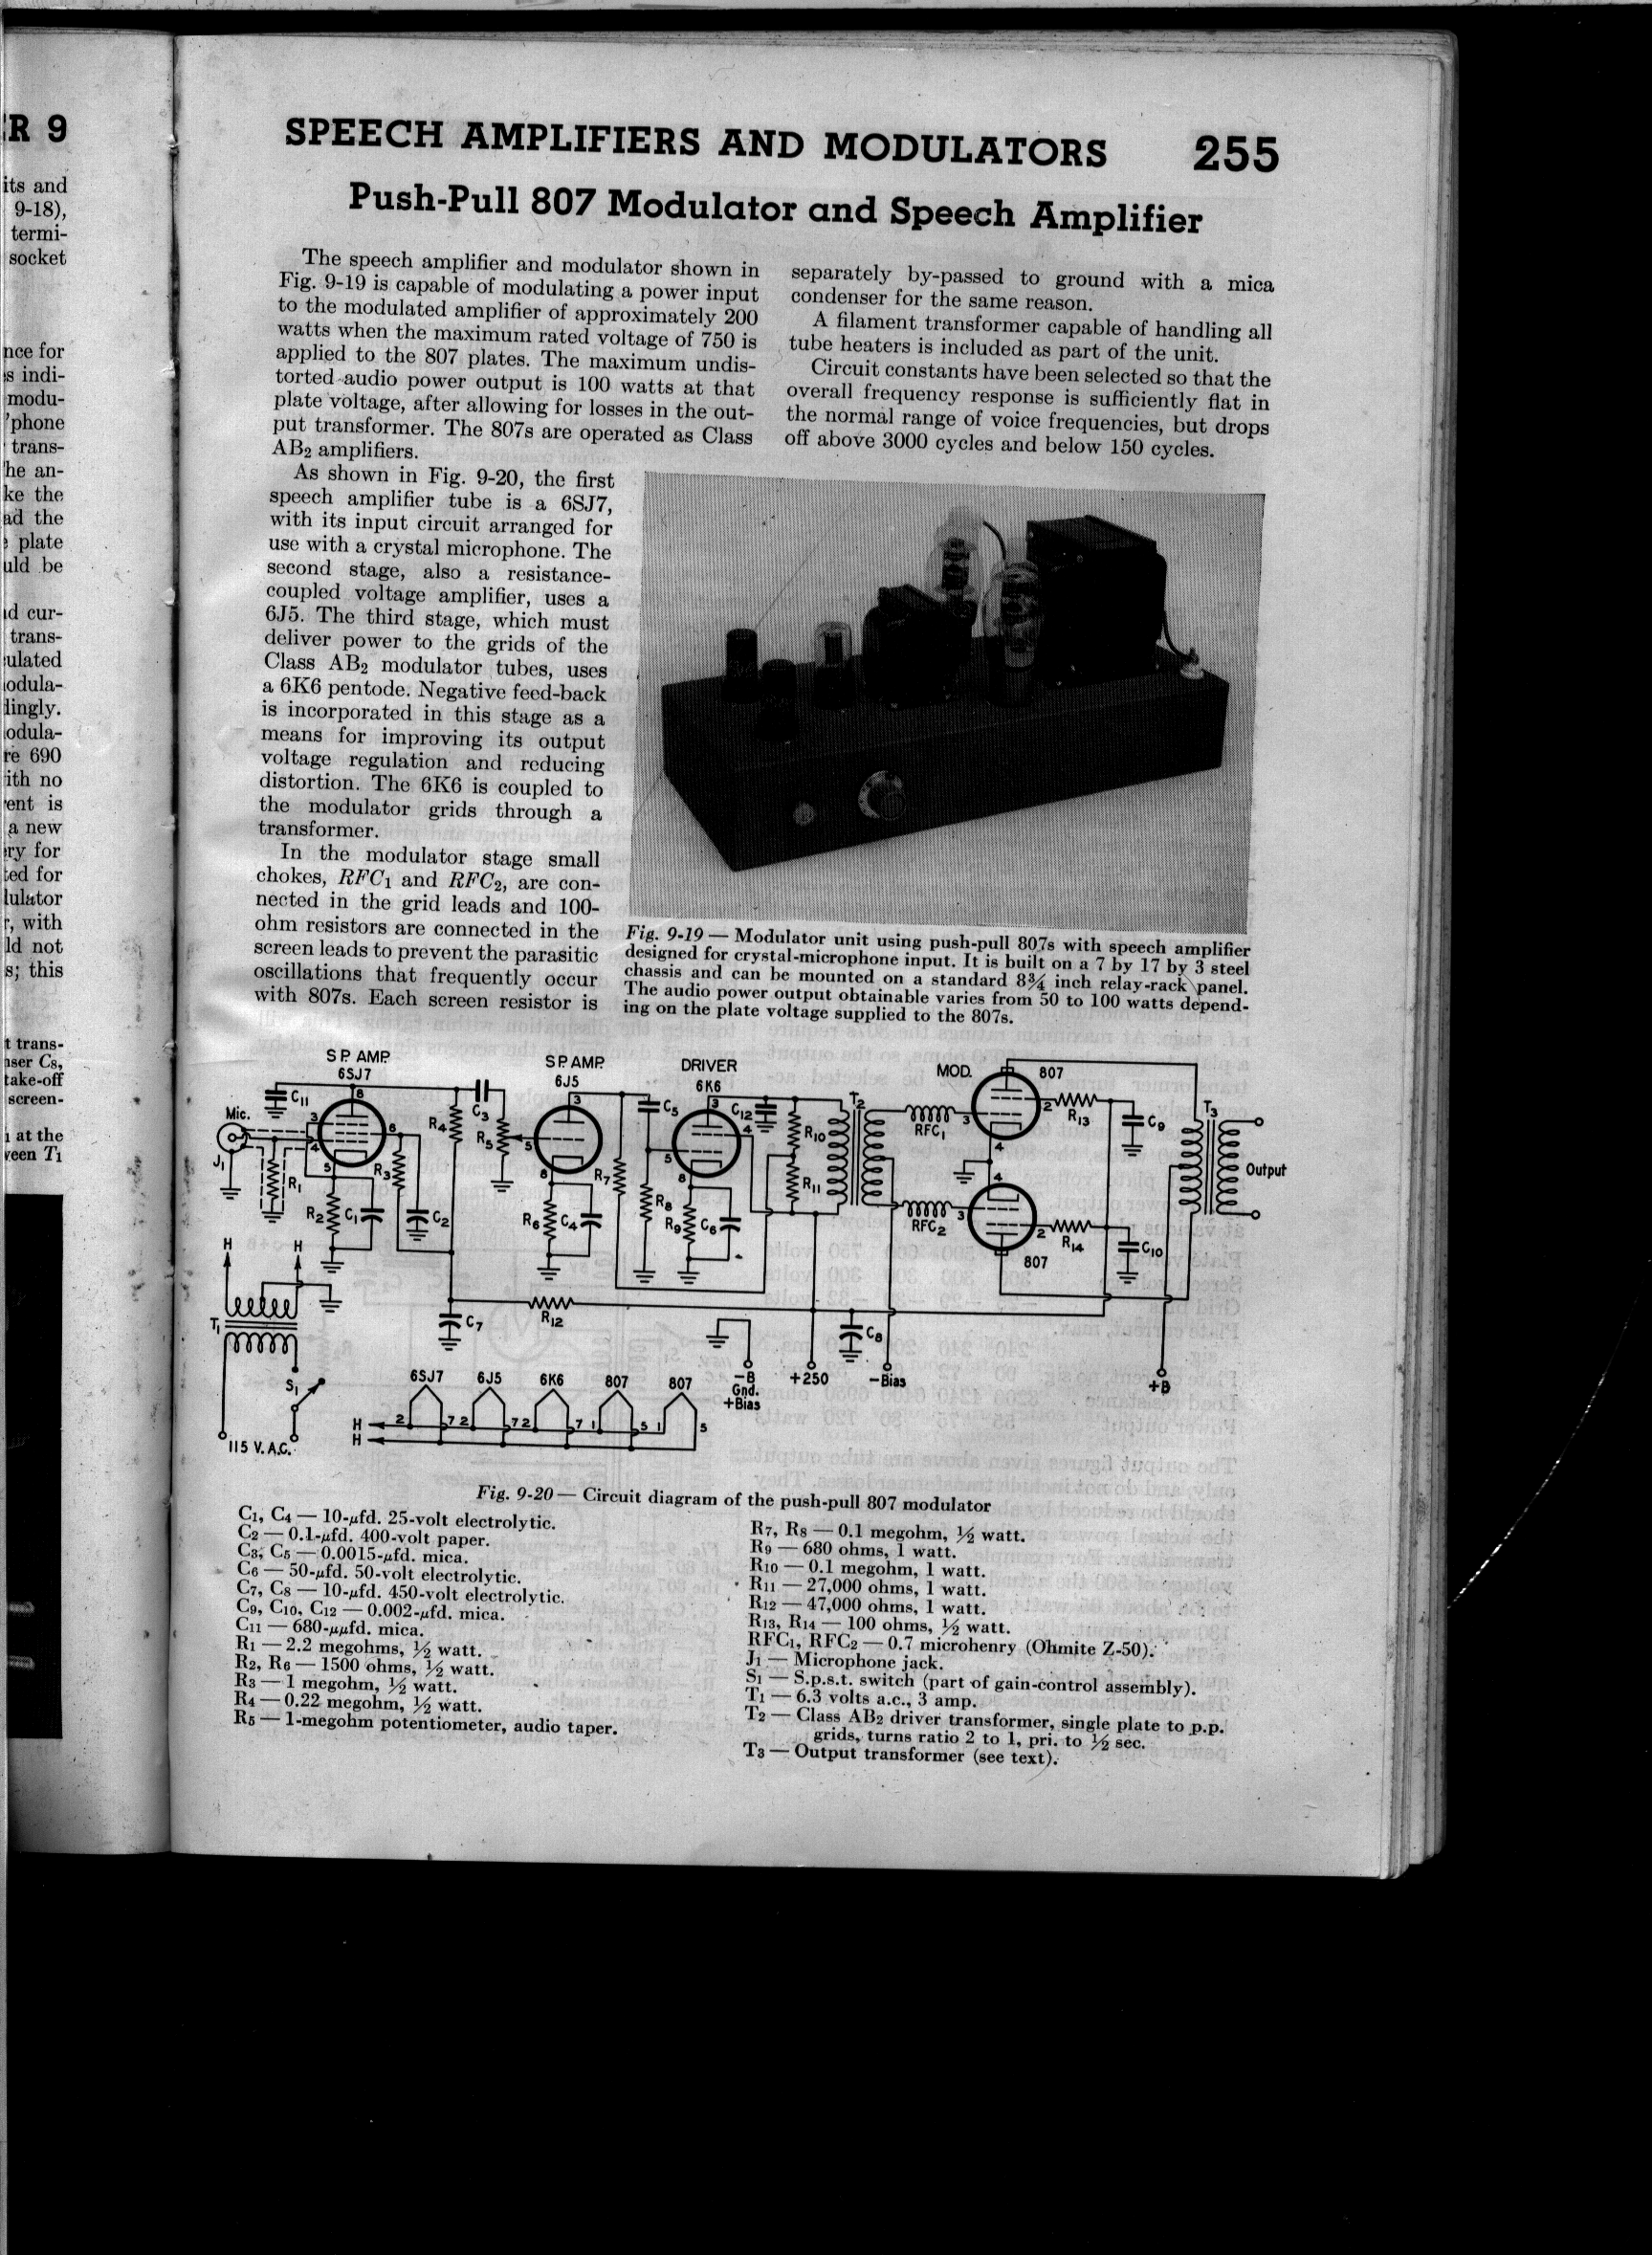 Higher Power Amps Using 807s Or 1625s Diyaudio The Original Williamson Hifi Amplifier Schematic As Published In Are Large But I Wanted To Get Detail Hope Some Of You Can Appreciate This And Writeup Put 2 Images On My Own Site For Now